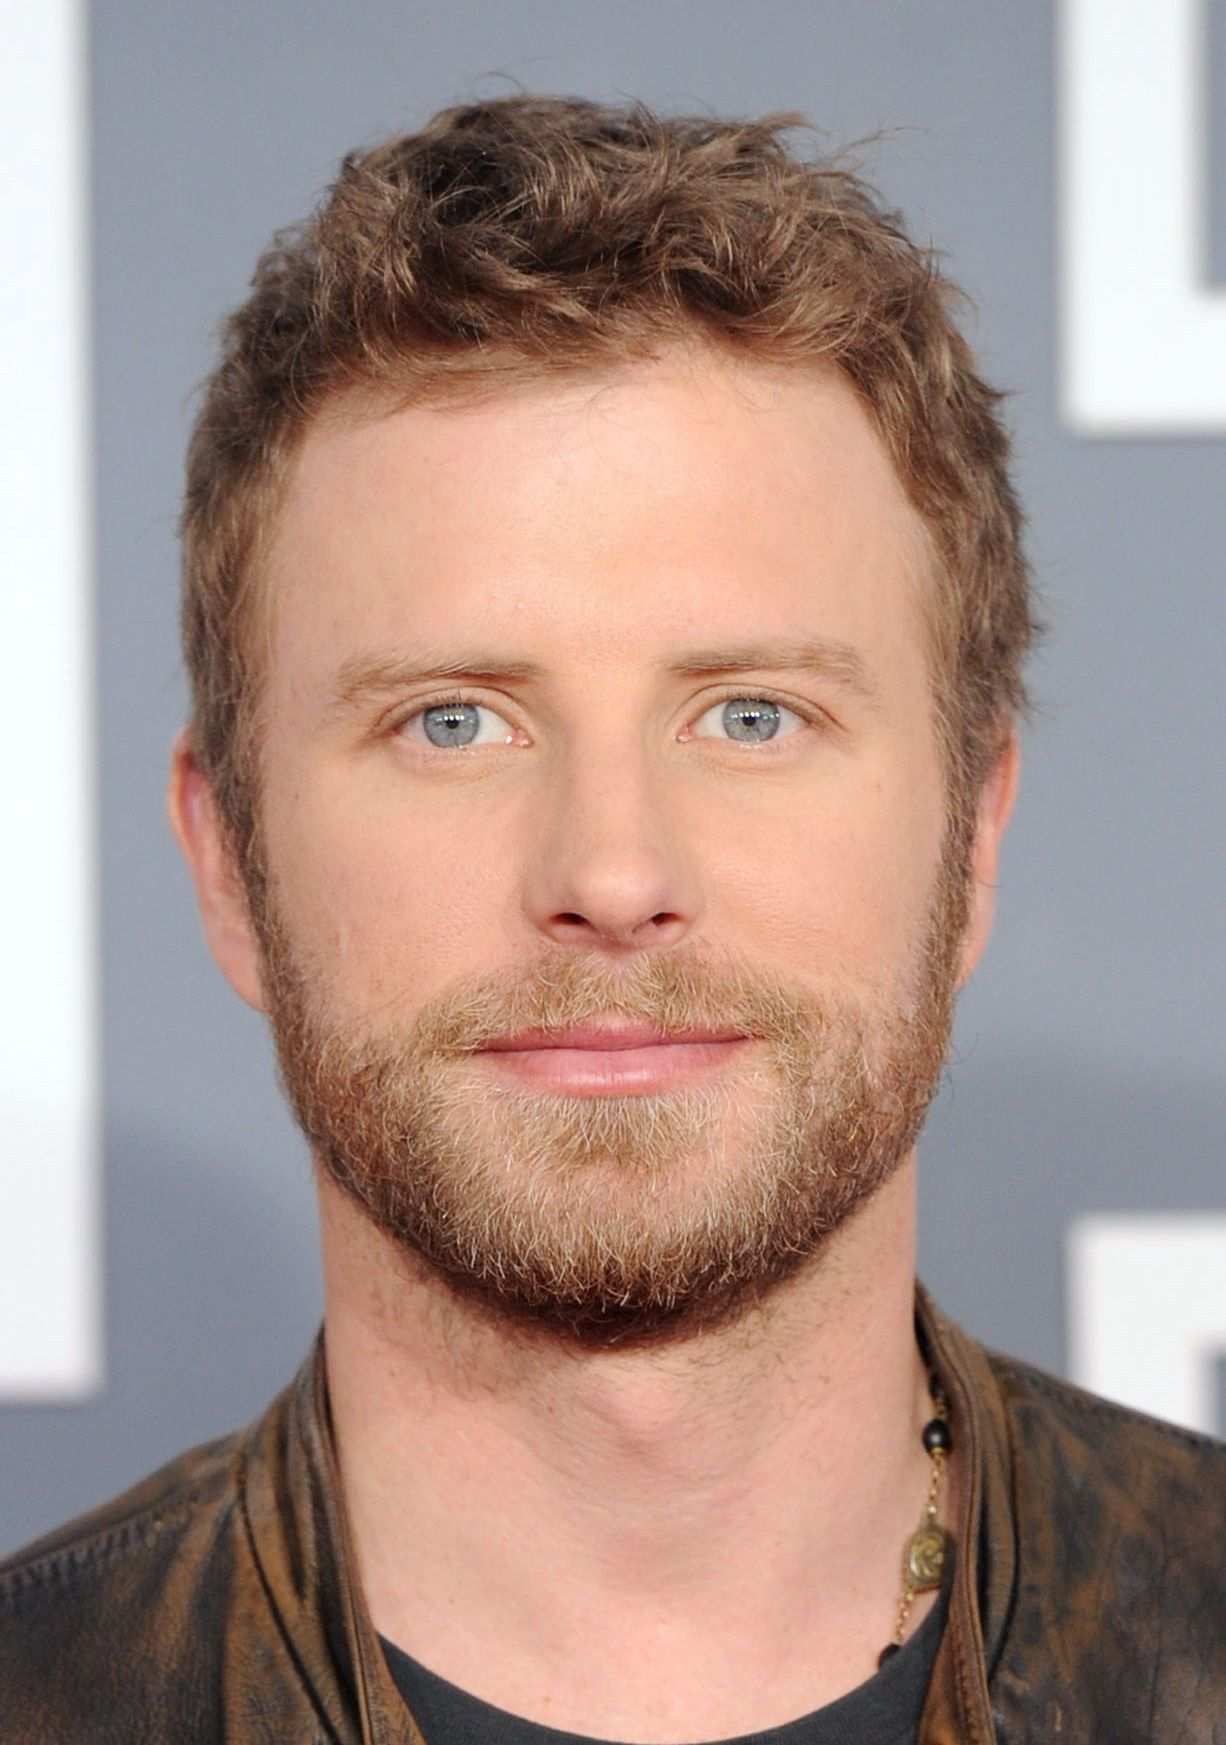 Astounding Men Facial Hair Dierks Bentley And Hair Style For Men On Pinterest Short Hairstyles Gunalazisus